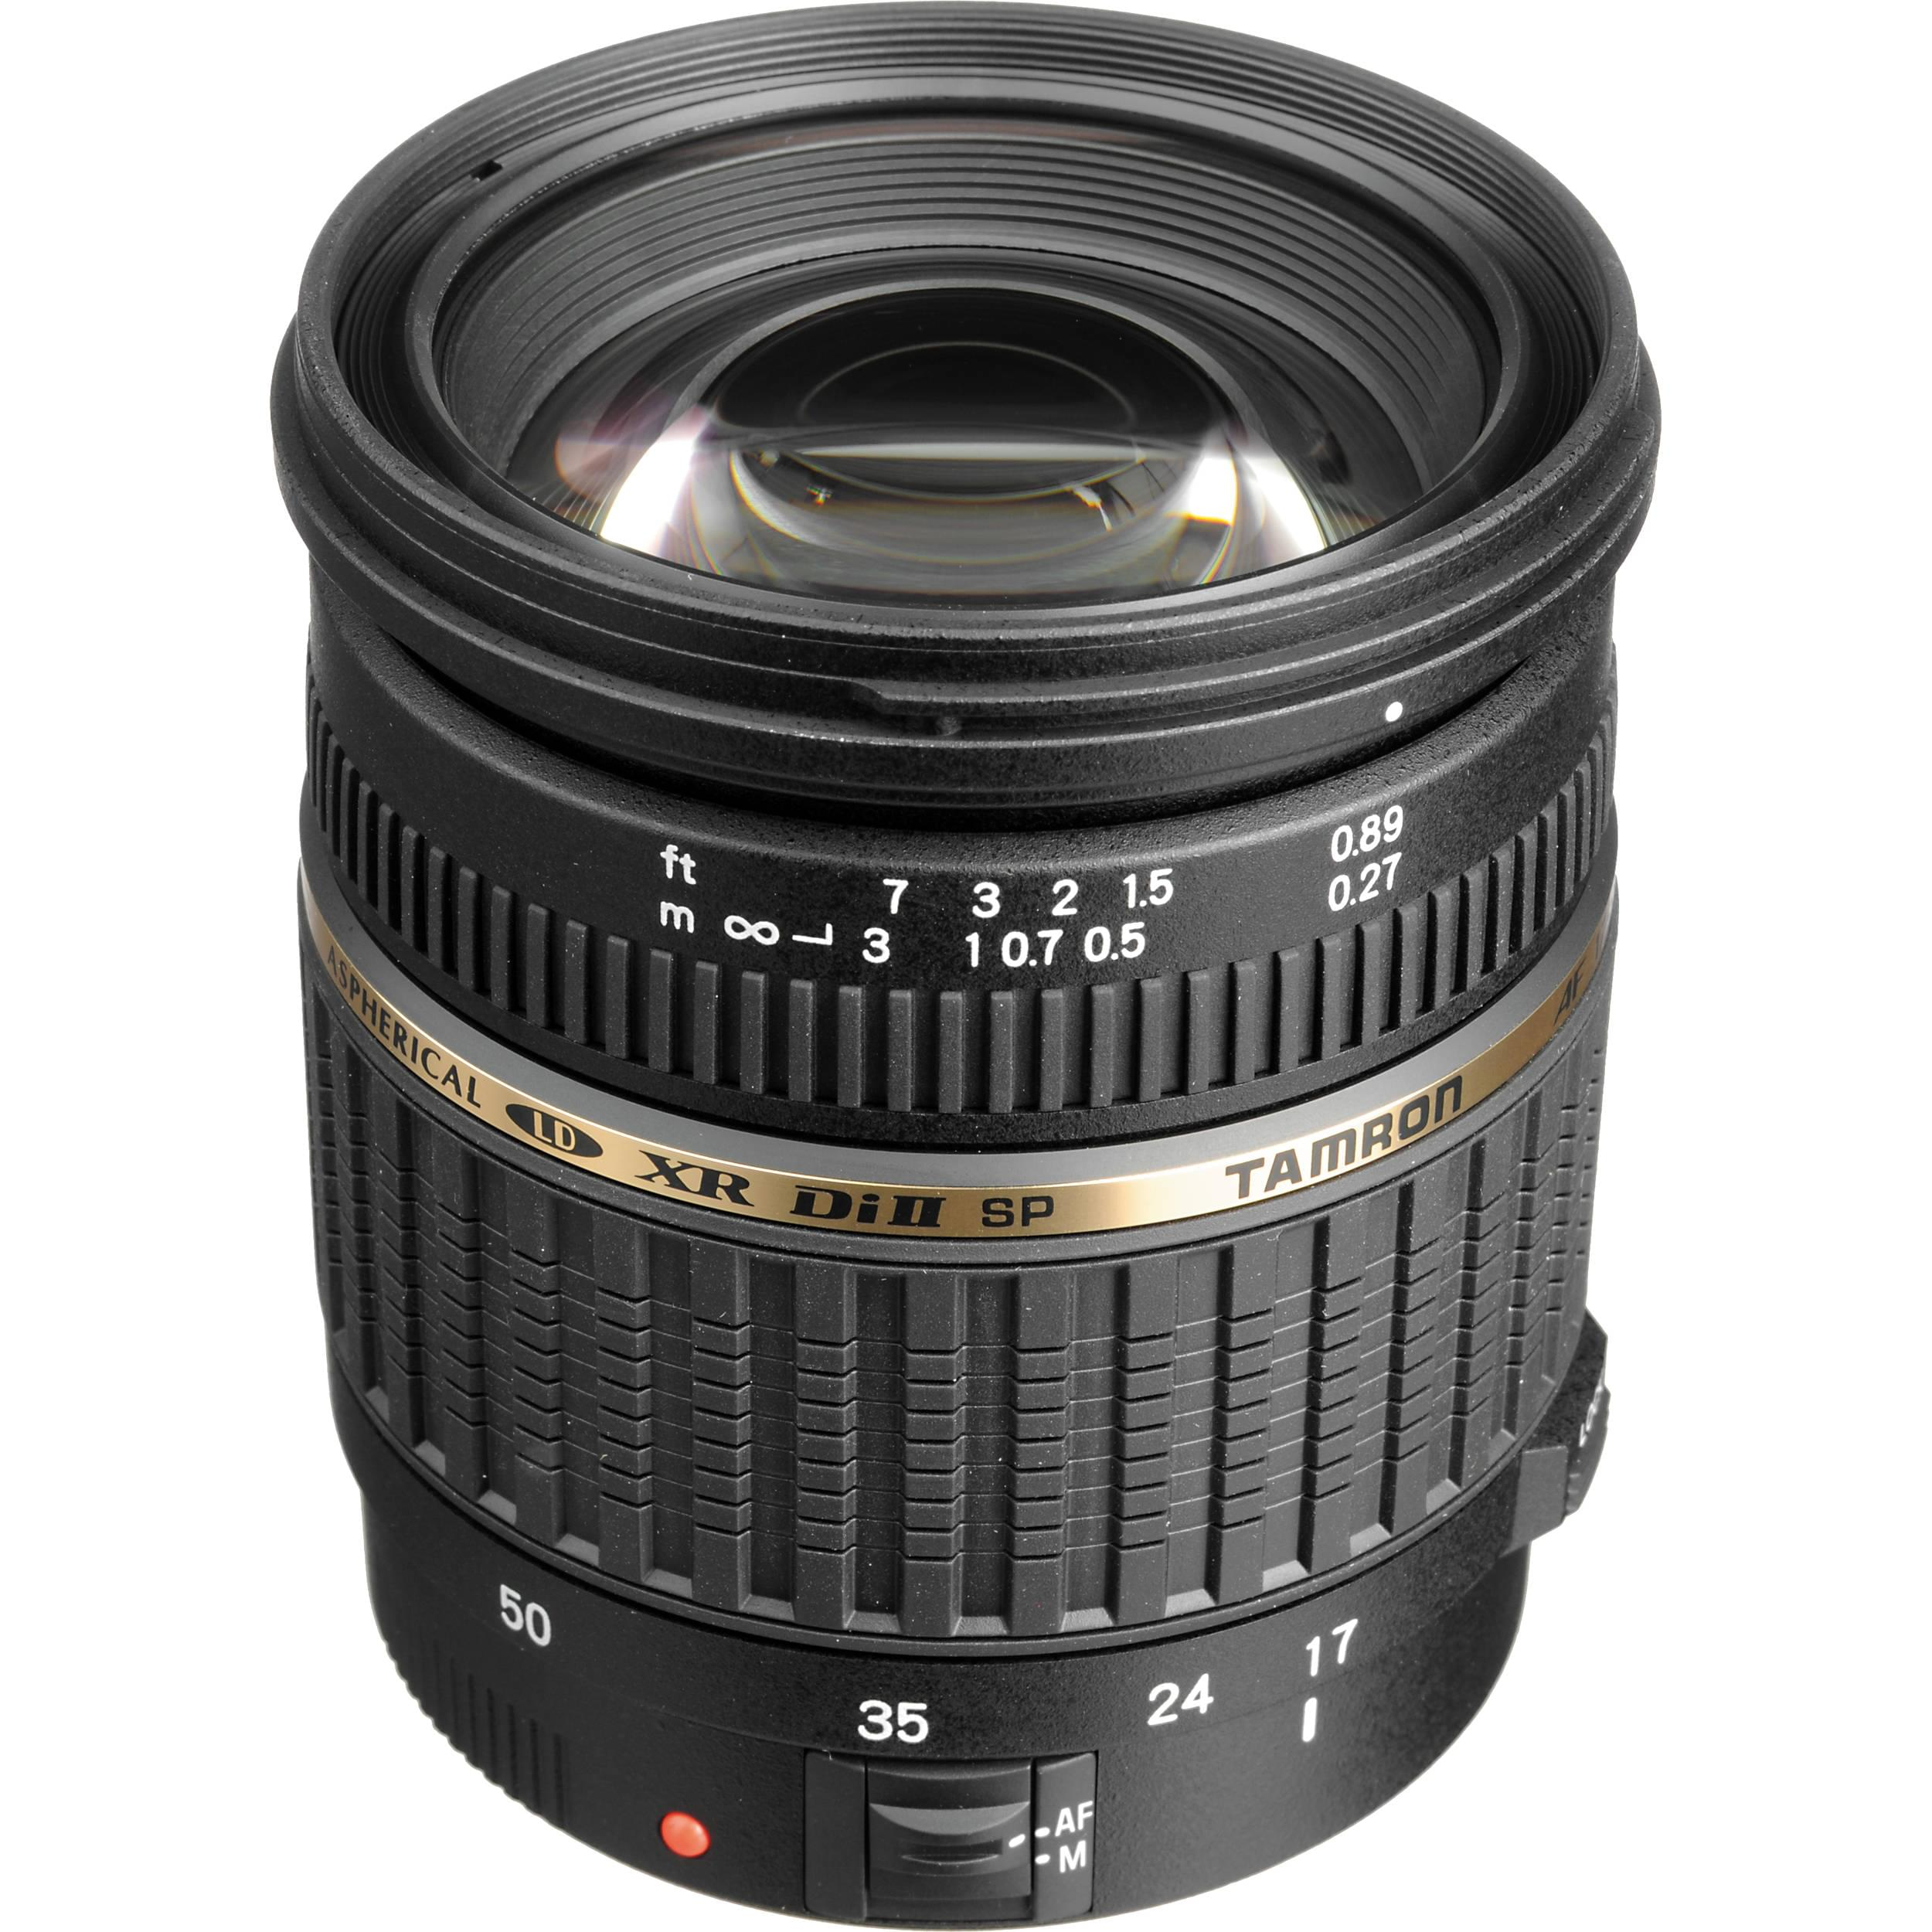 Tam ron 17-50mm f/2.8 XR LD Aspherical (IF) for Canon/Nikon